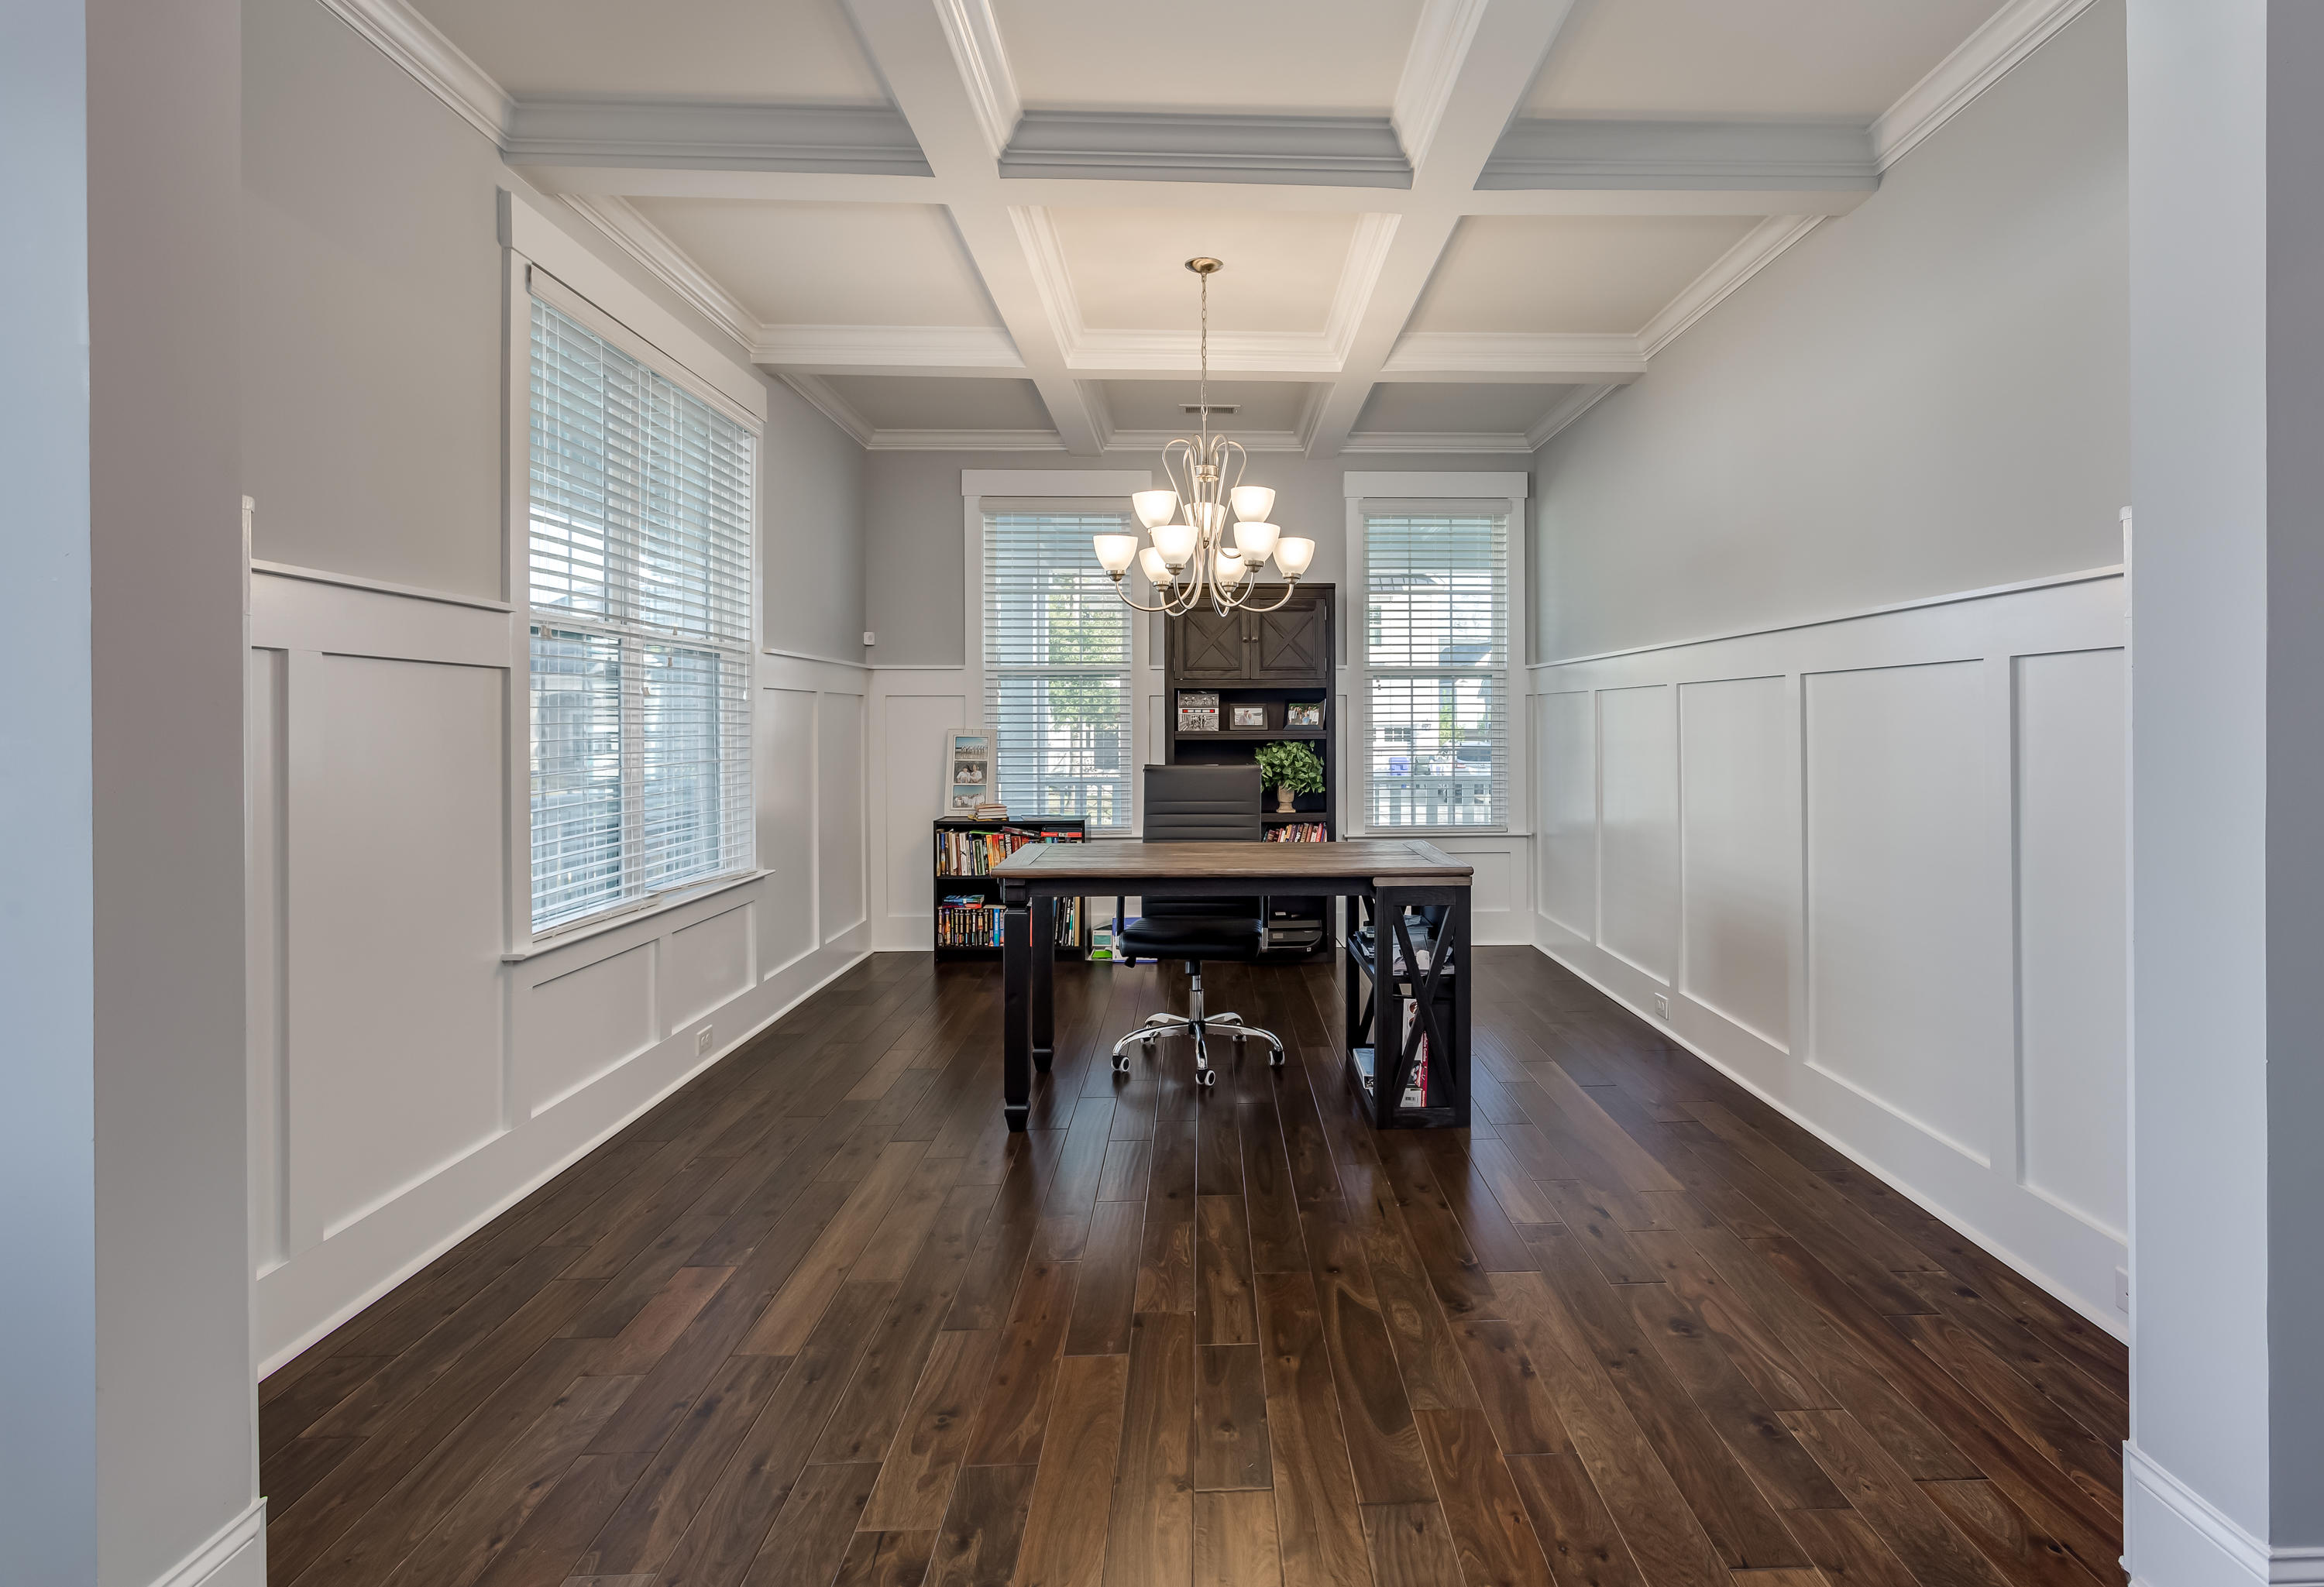 The Village at Stiles Point Homes For Sale - 849 Shutes Folly, Charleston, SC - 52